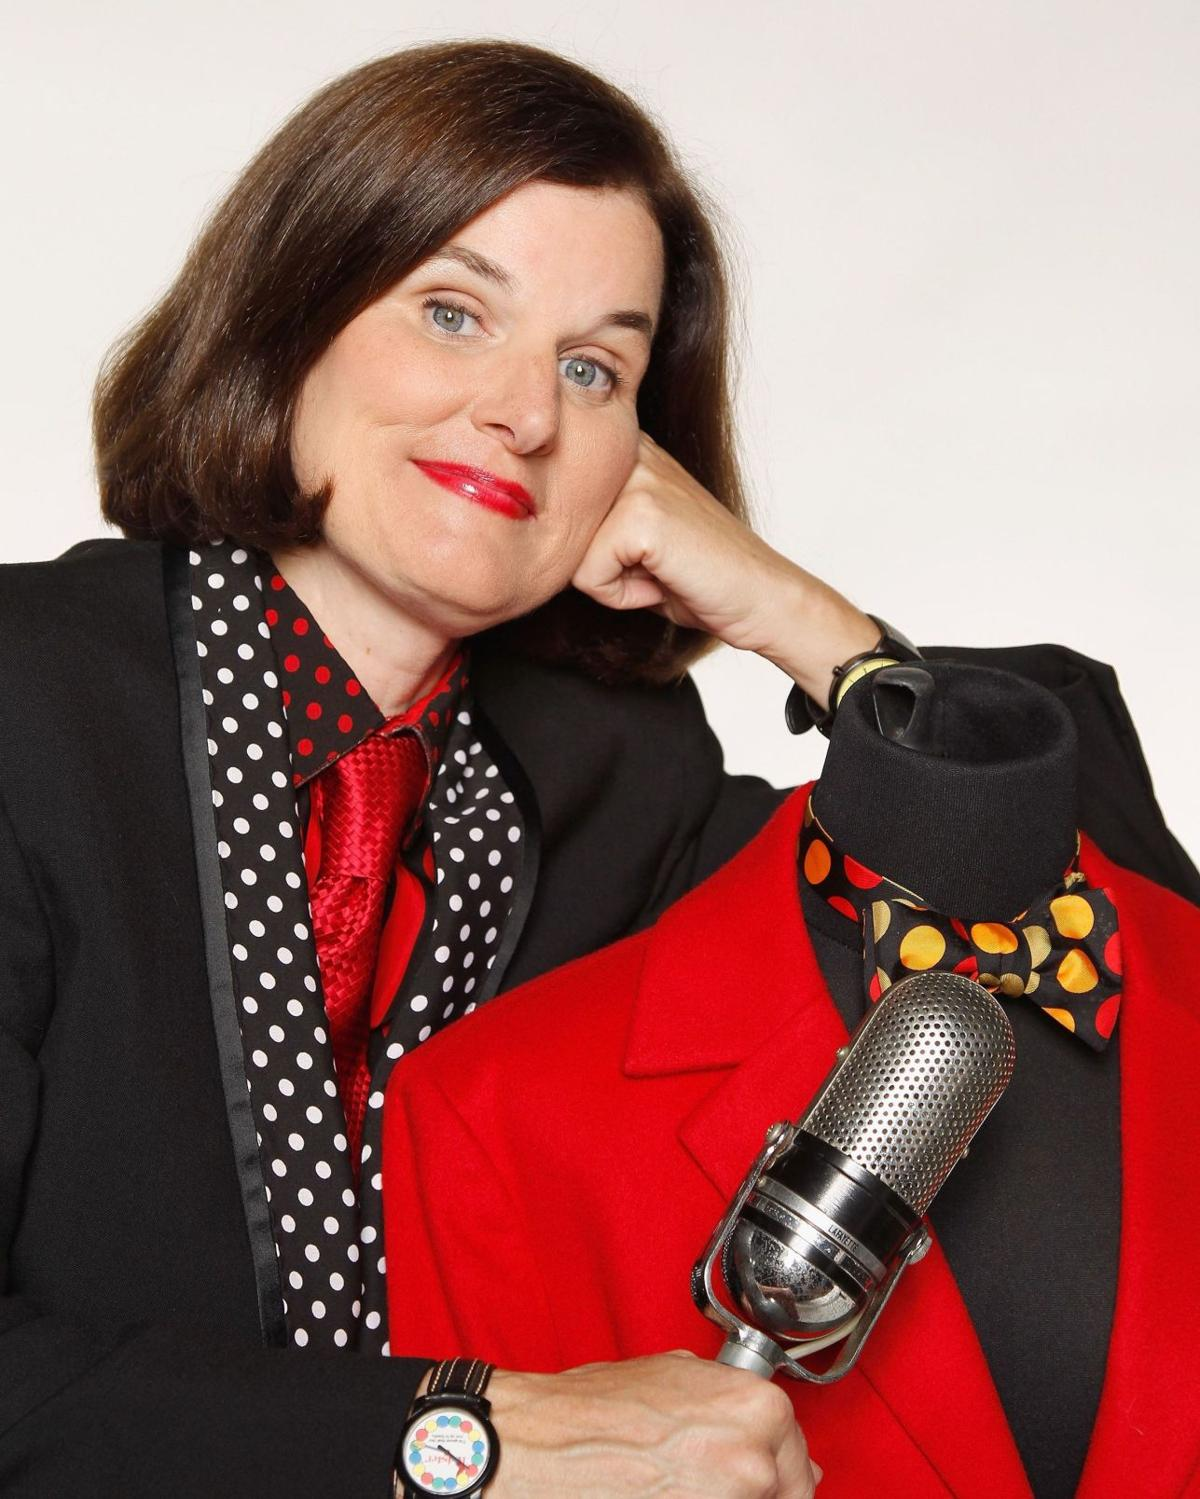 NPR's Paula Poundstone offers smart comedy on latest tour